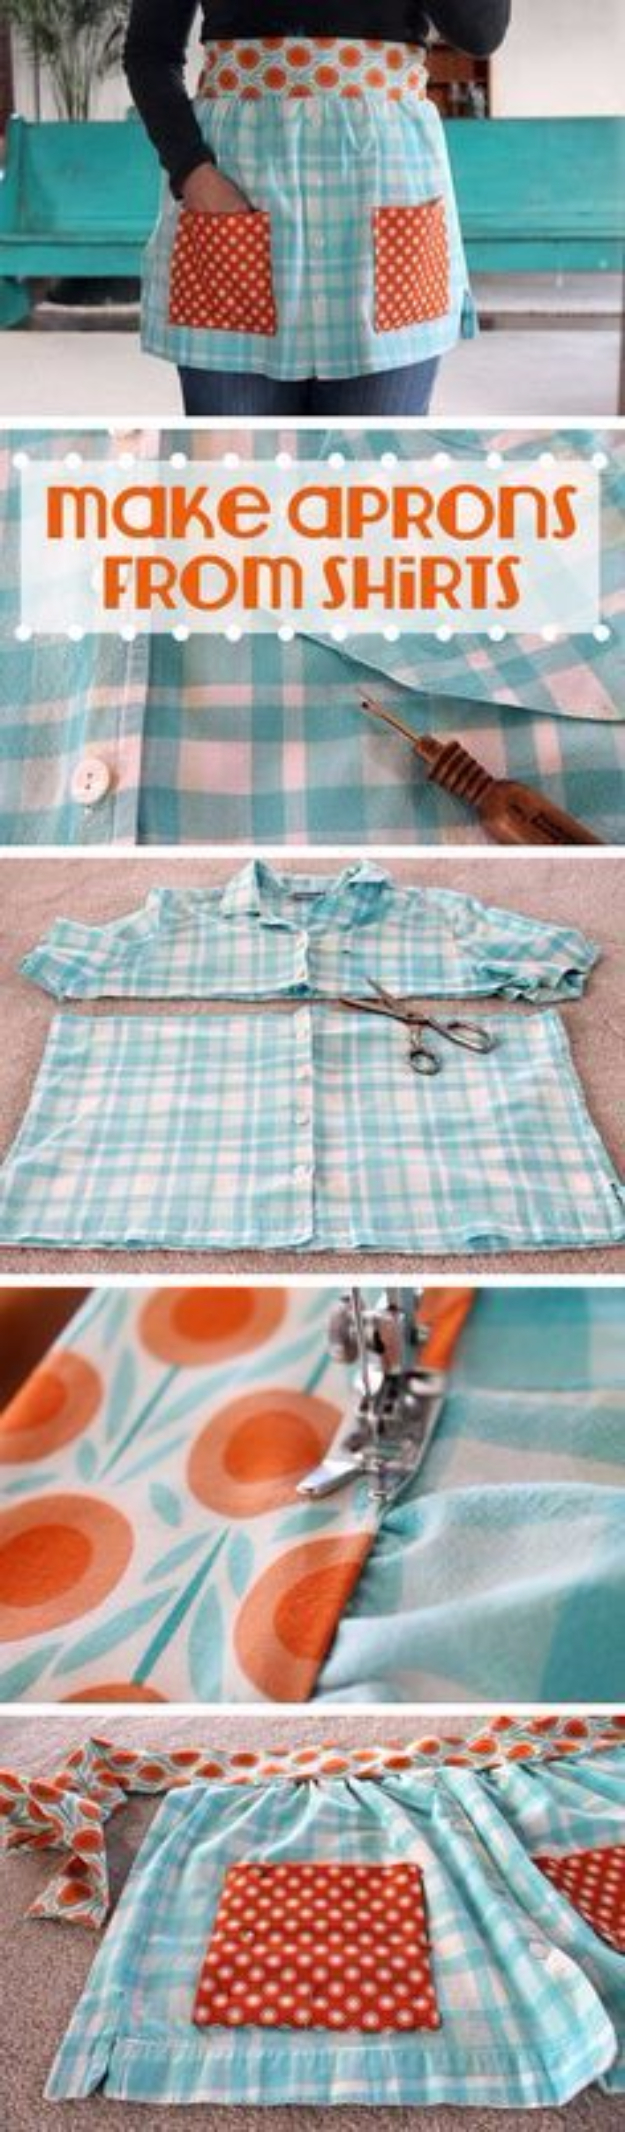 12 Things to Sew for Your Kitchen| DIY Sewing Projects, Easy Sewing Projects, Quick and Easy Sewing Projects for Kids, Kitchen Sewing Projects, Fast Sewing Projects, Popular Pin